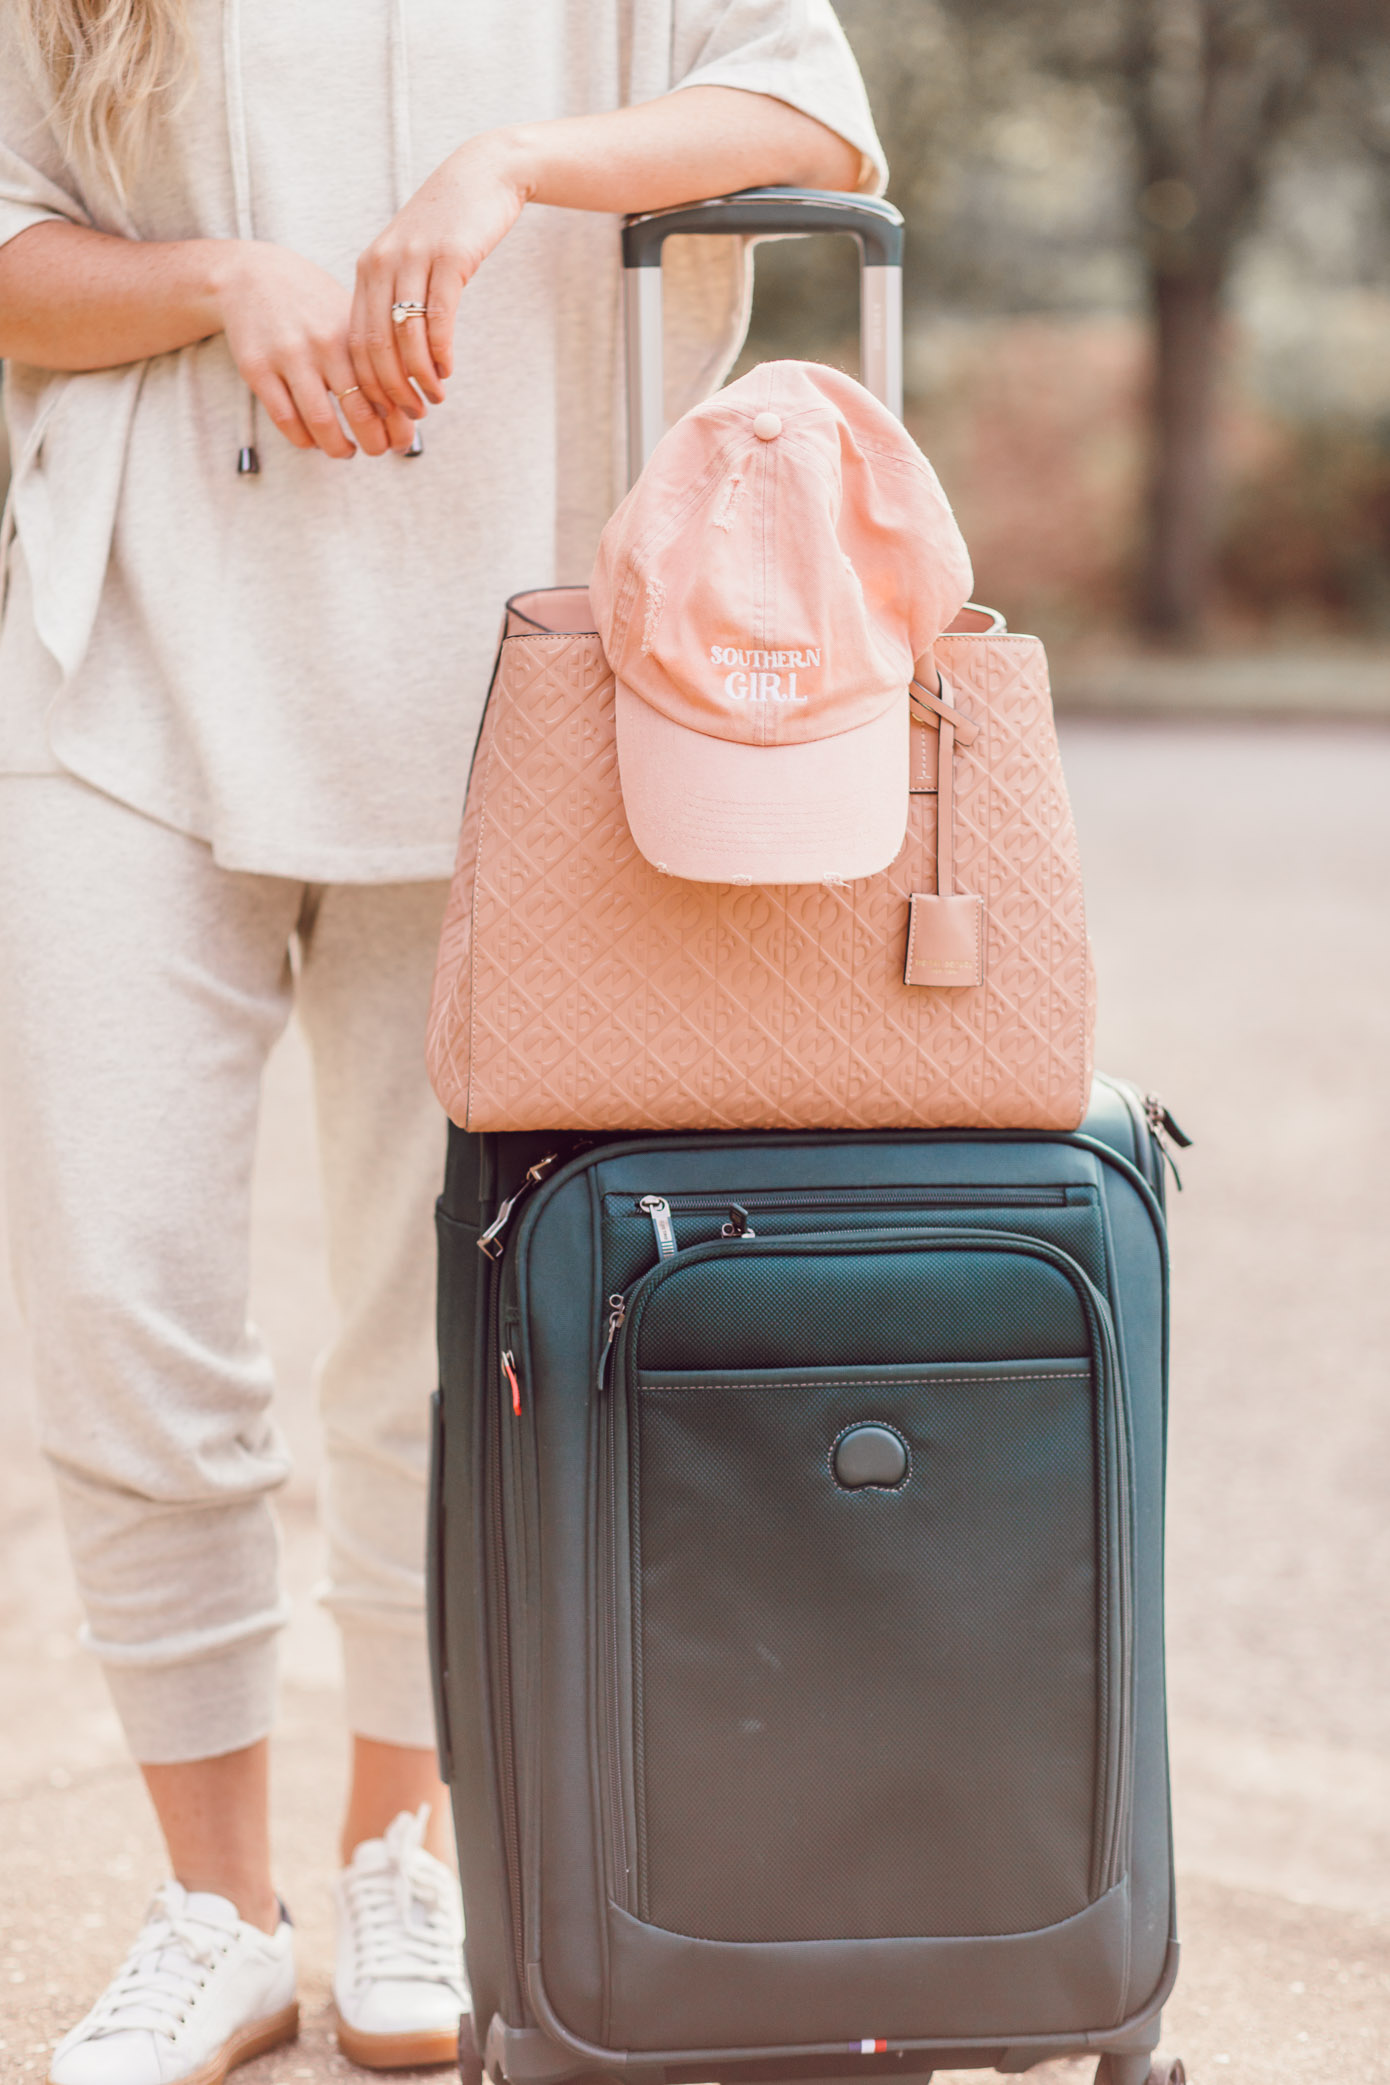 Hunter Green Luggage, Blush Tote Bag | Cozy Fall Travel Style featured on Louella Reese